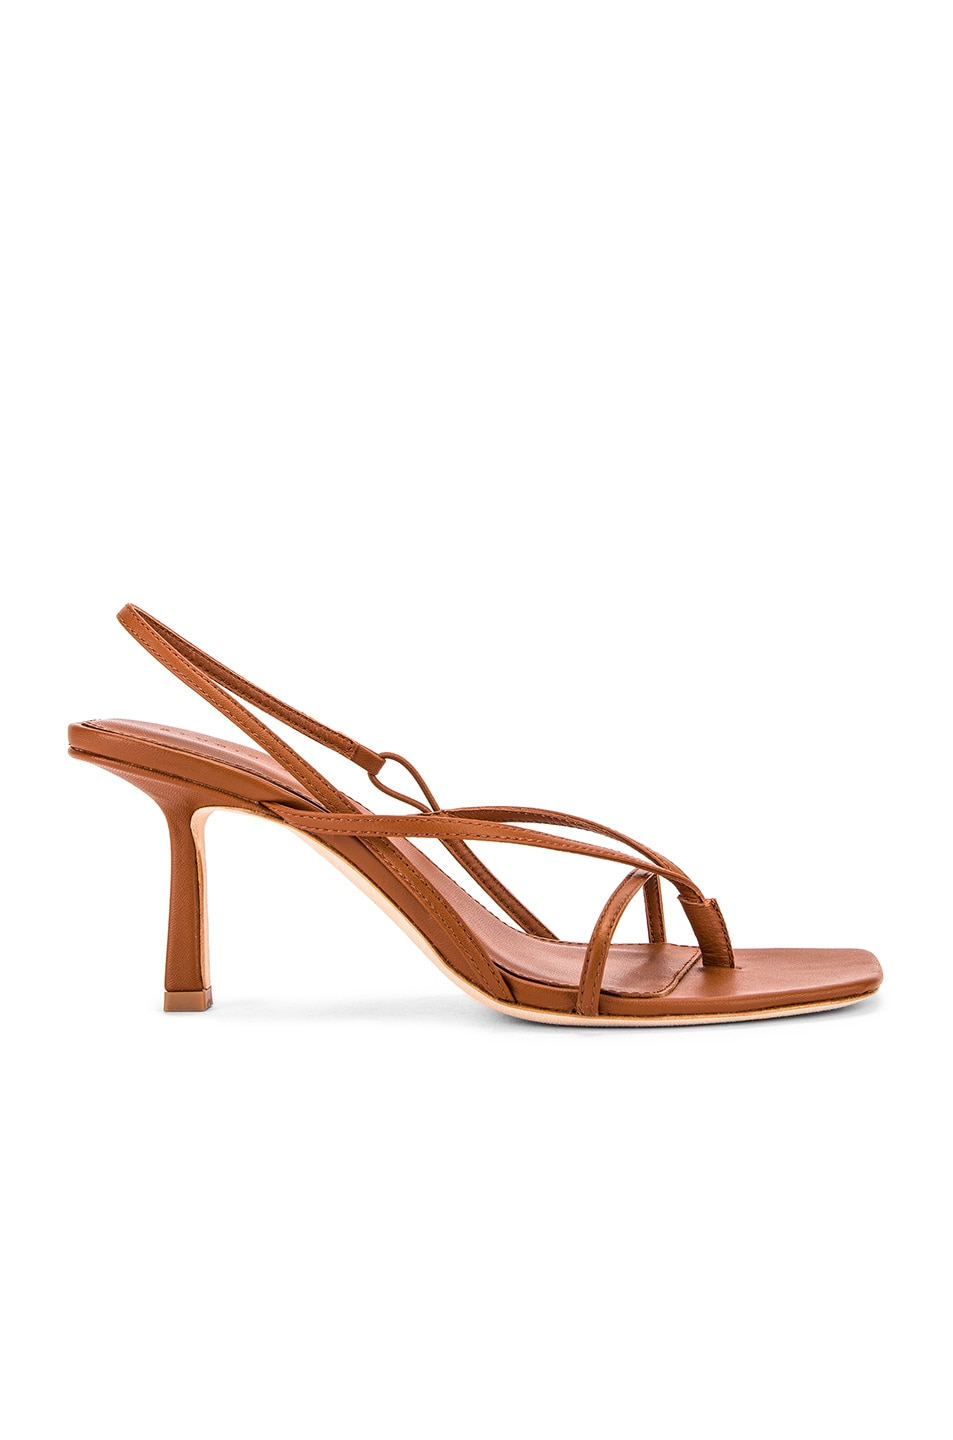 Image 1 of Studio Amelia 2.4 Flip Flop Heel in Tan Nappa Leather